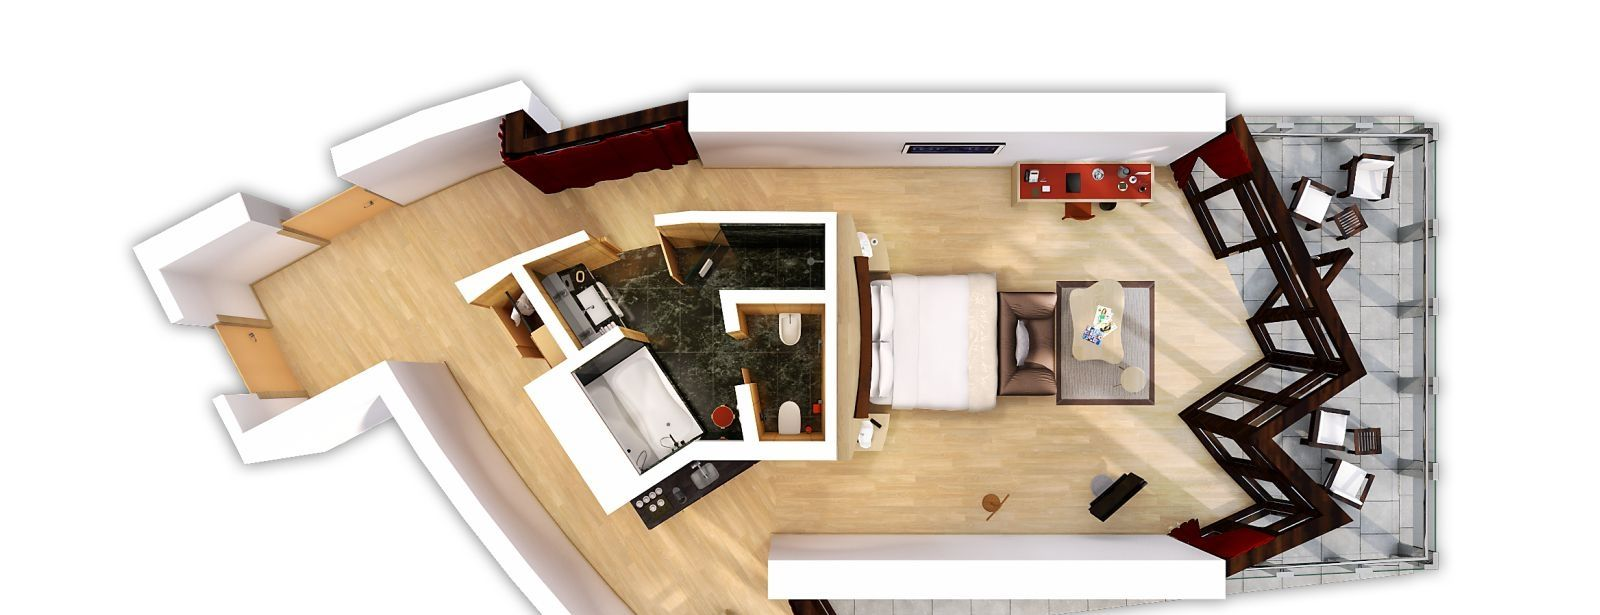 Suite Gehry 3D Floorplan